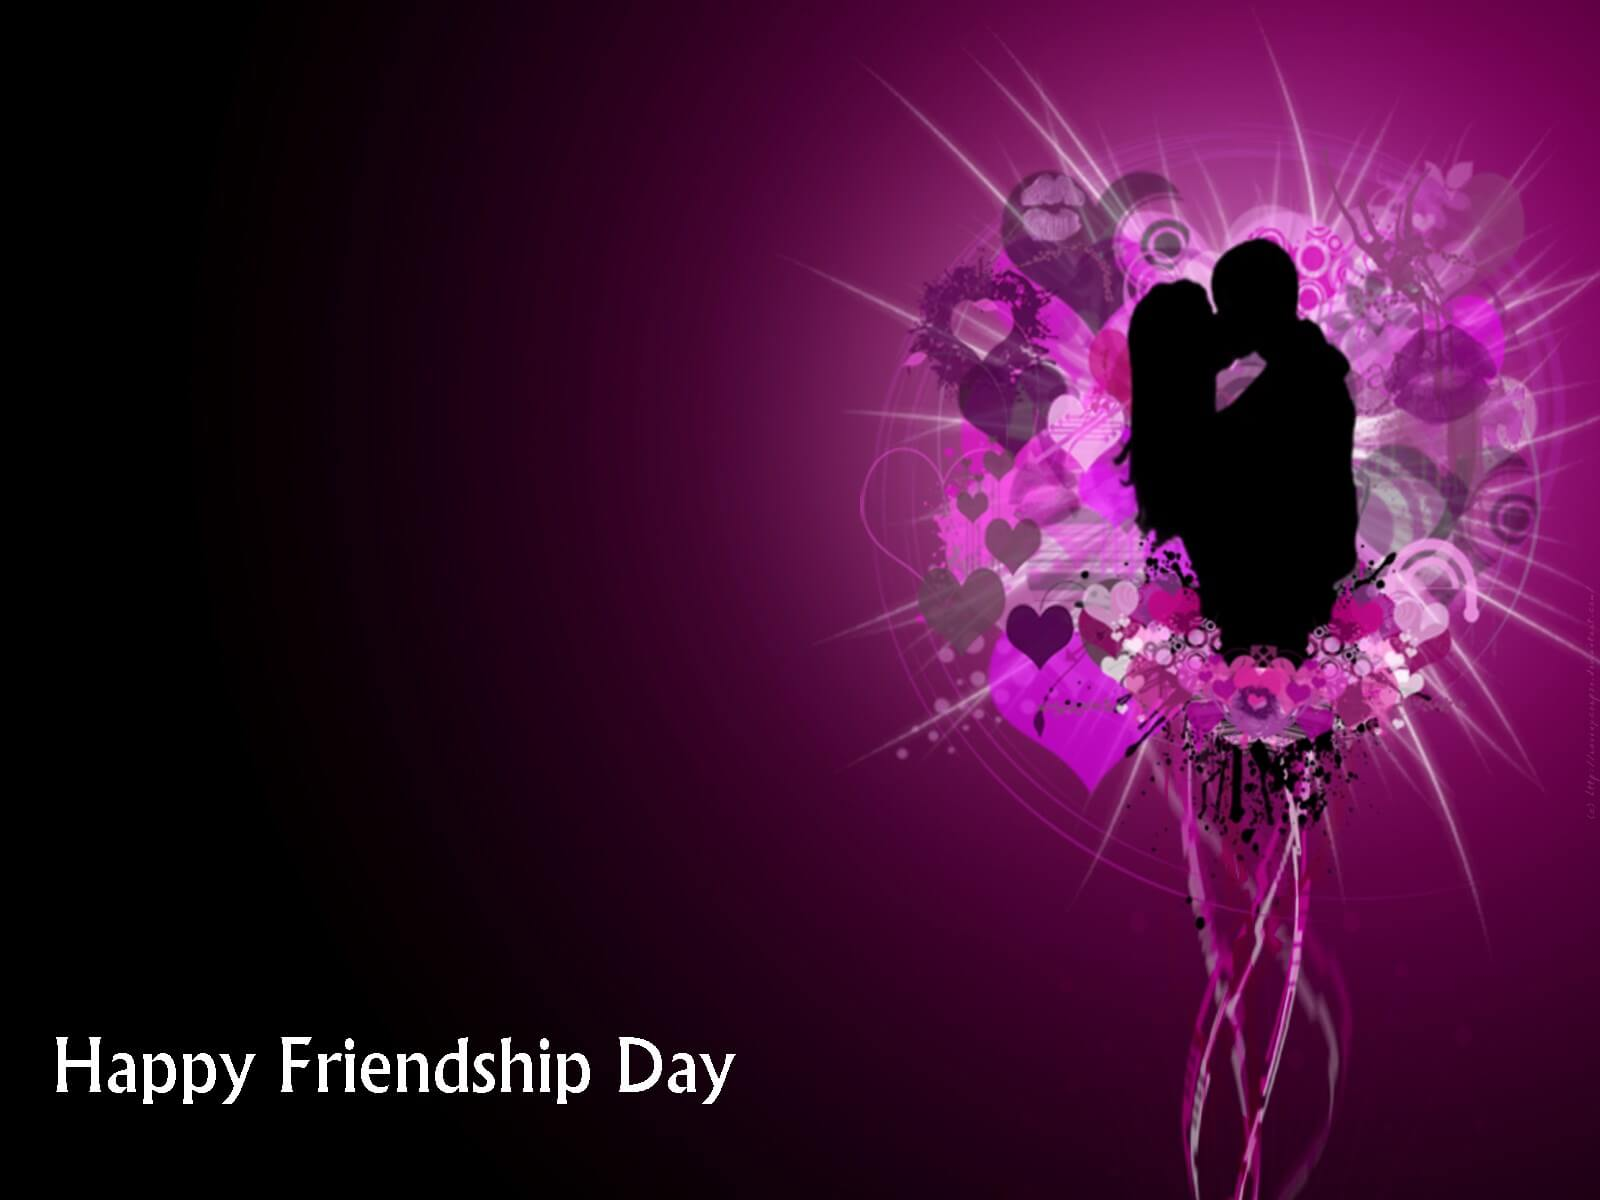 happy friendship day romantic latest hd wallpaper